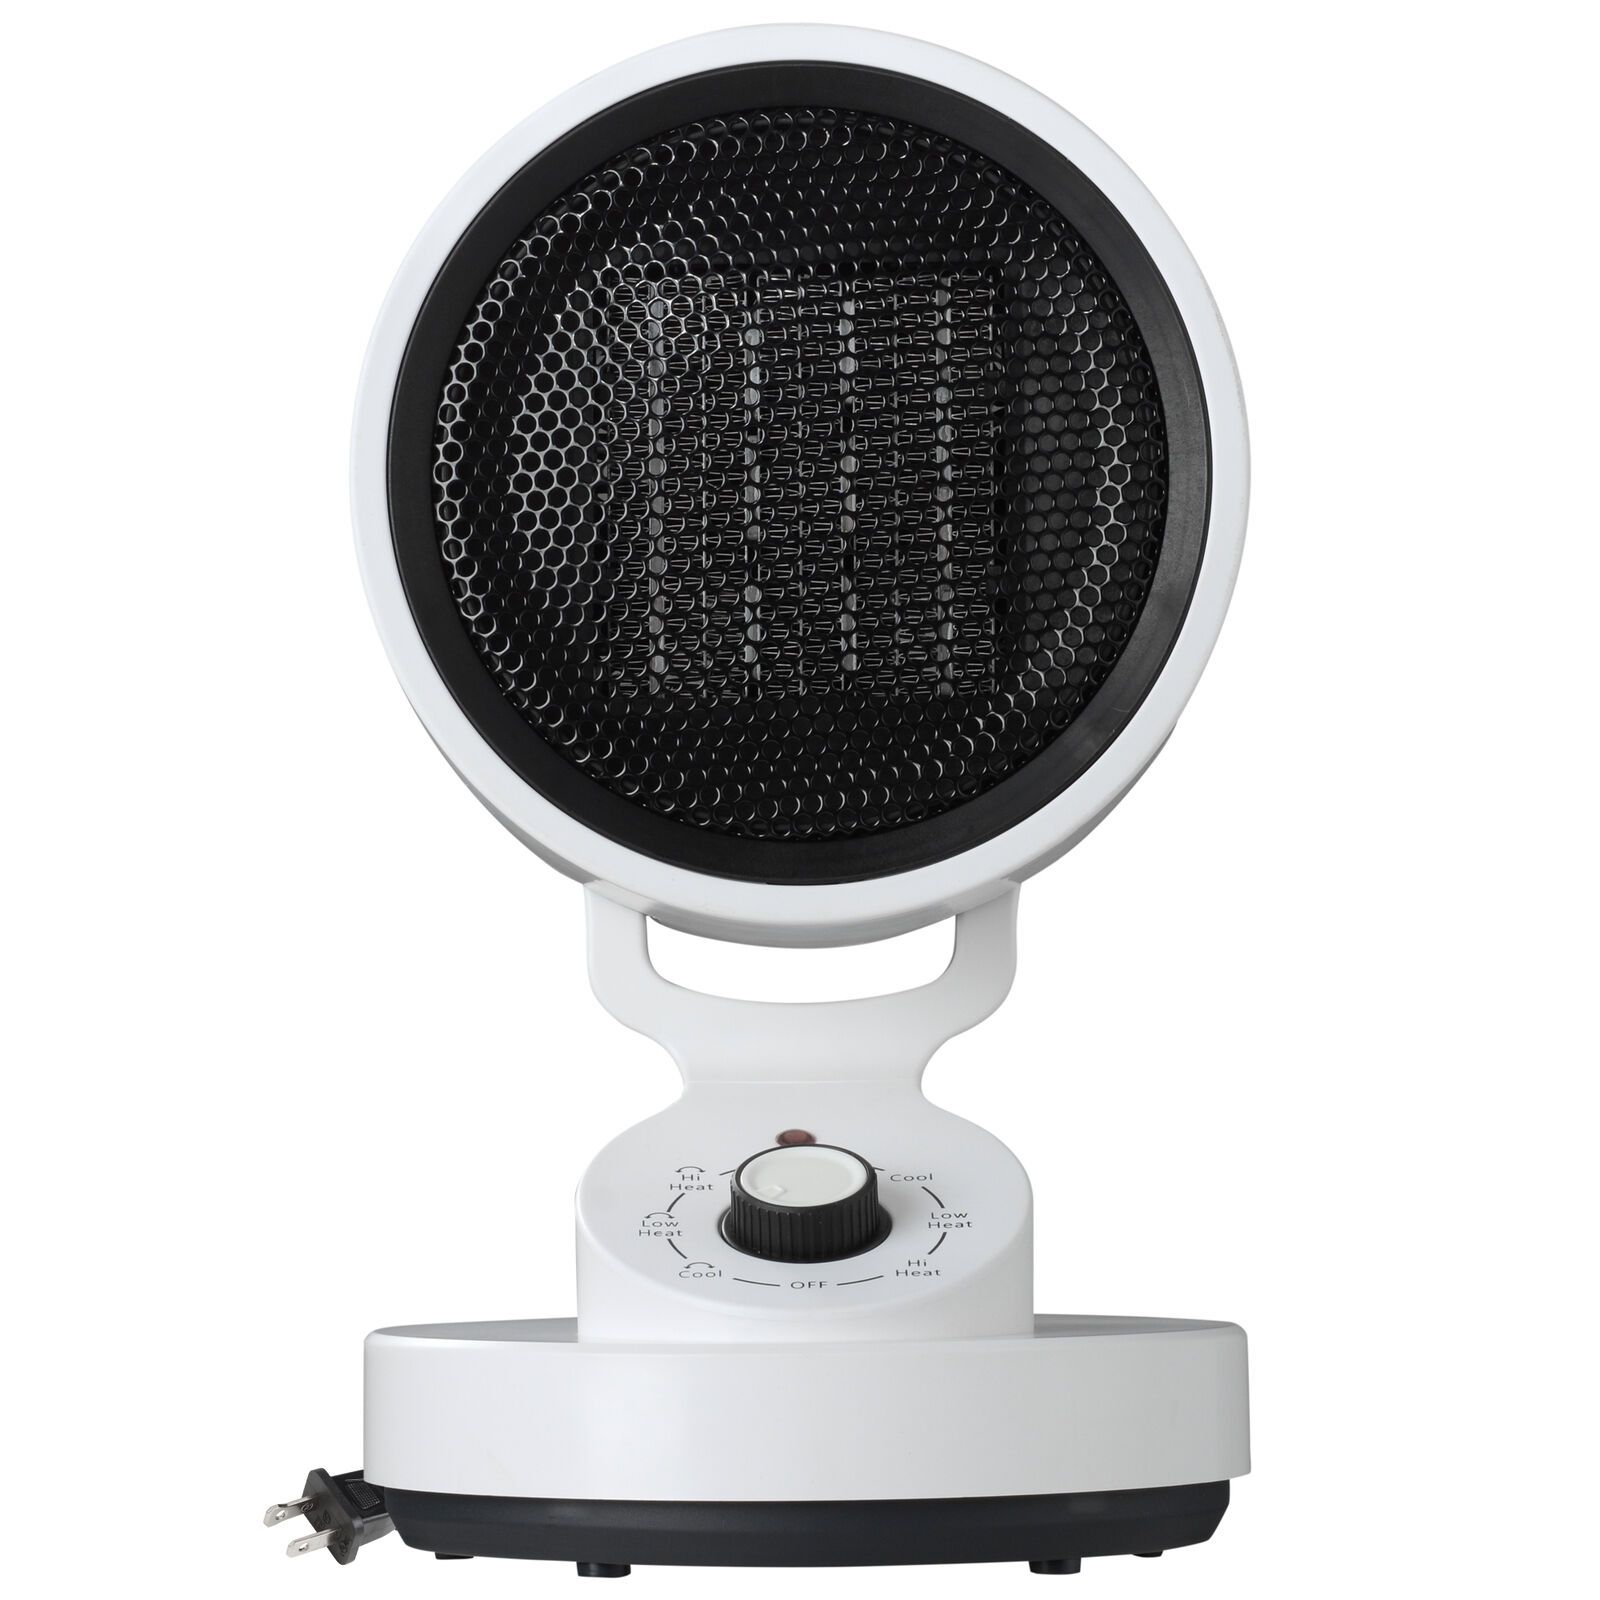 1500W Tabletop Portable Oscillating Ceramic Heater with Cooling Fan For Offices, Bedrooms, Classrooms, Basements